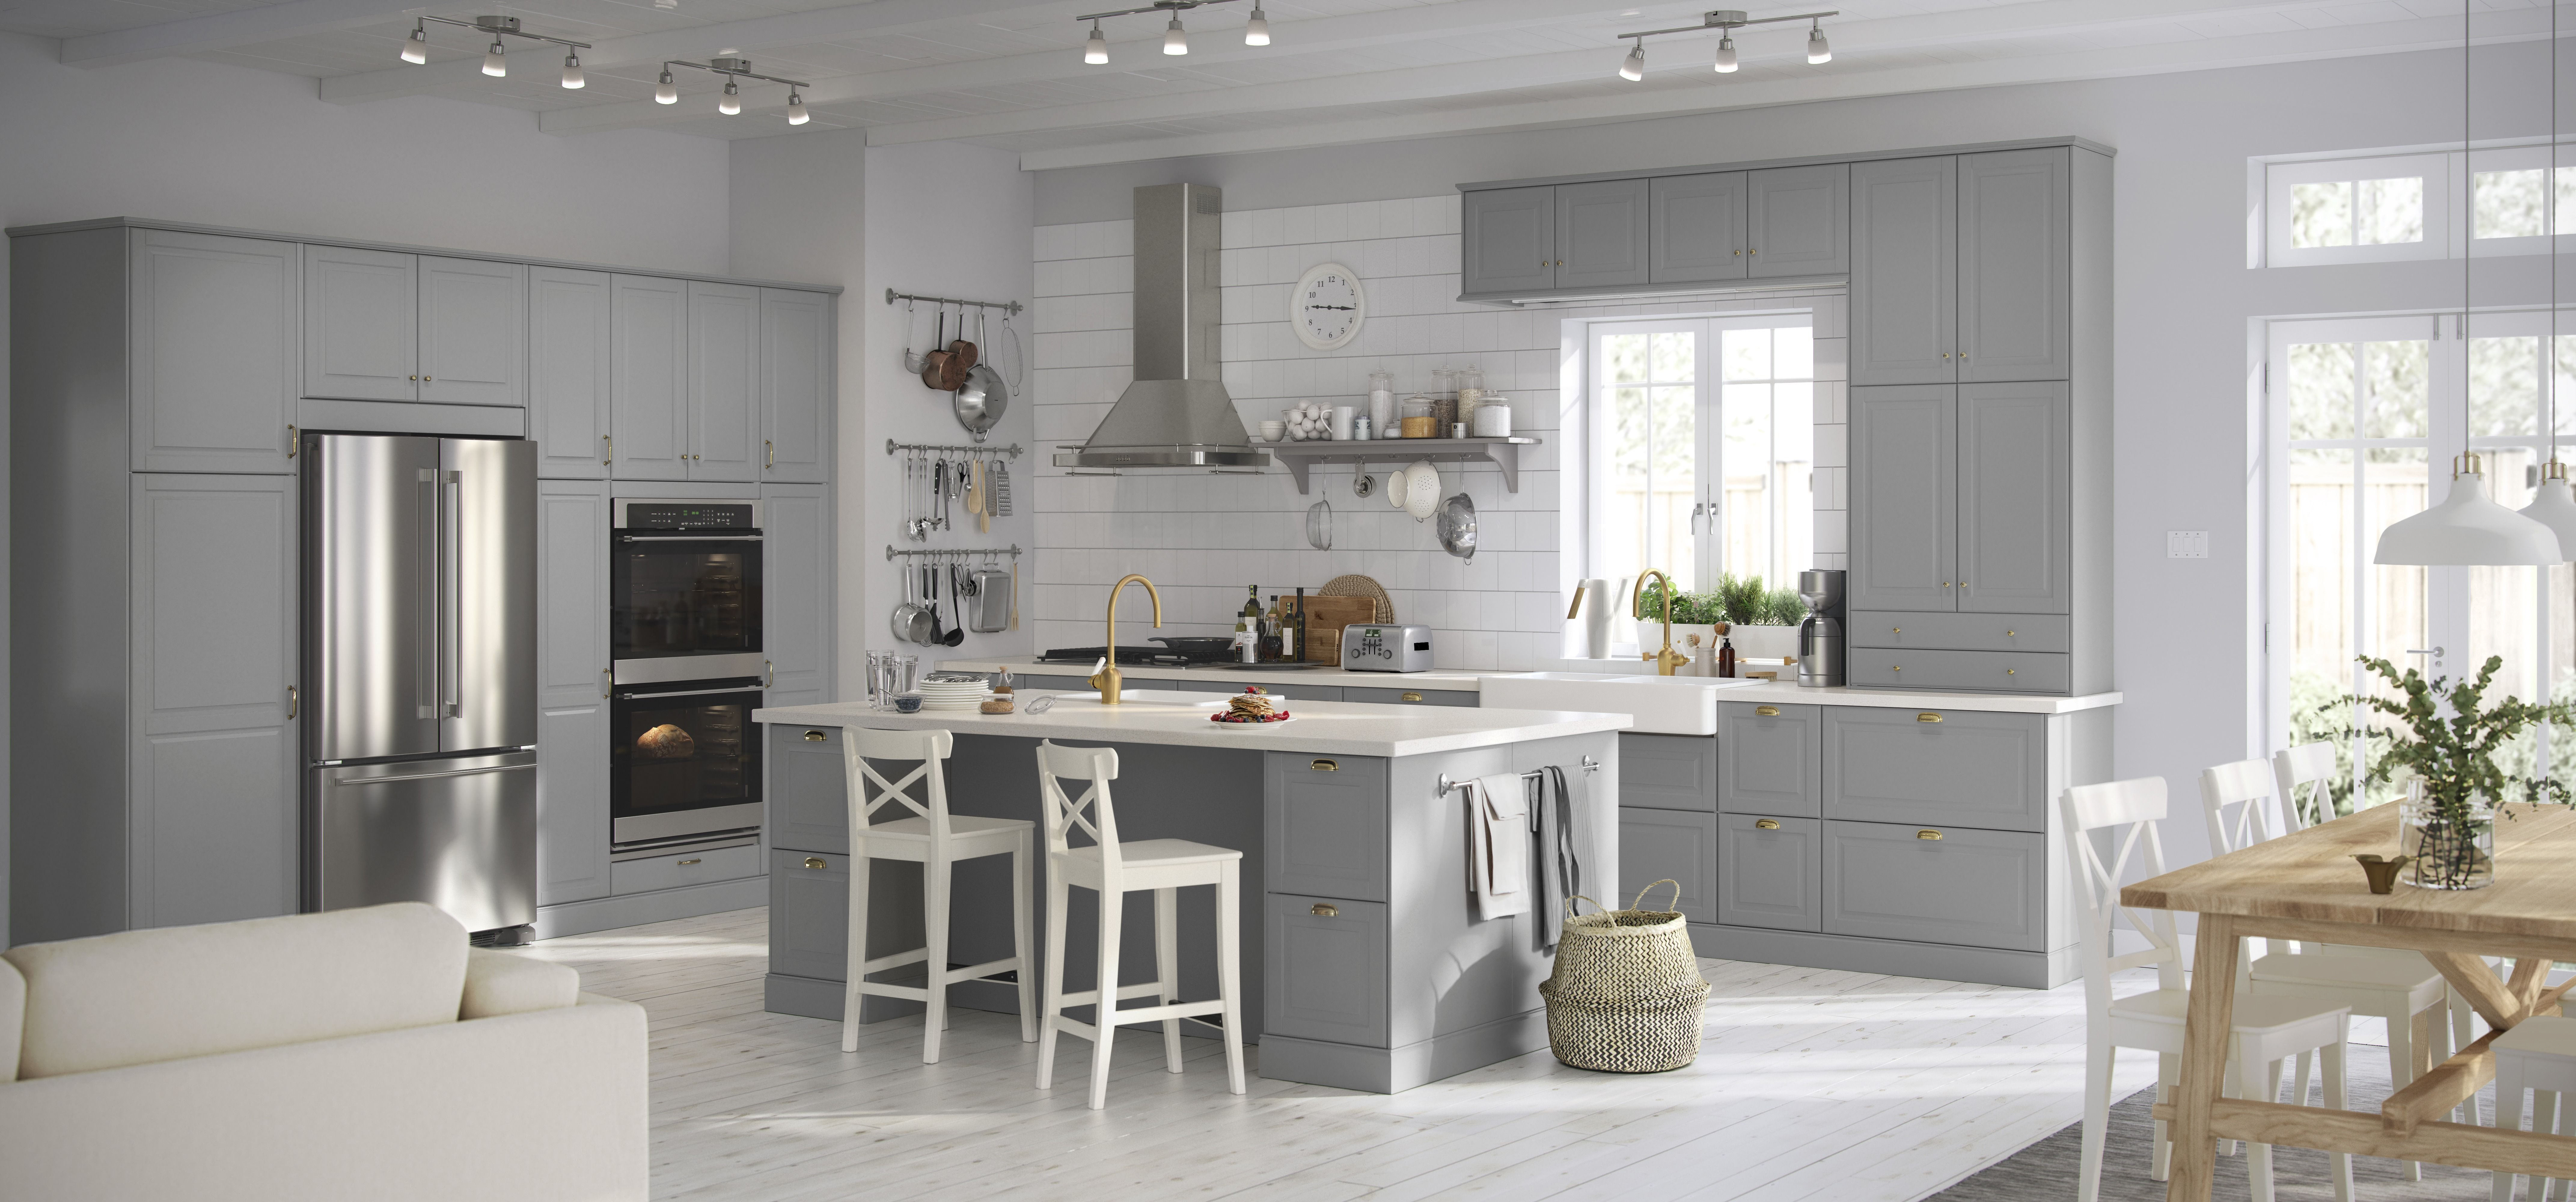 How To Design The Kitchen Island You Ve Been Dreaming Of